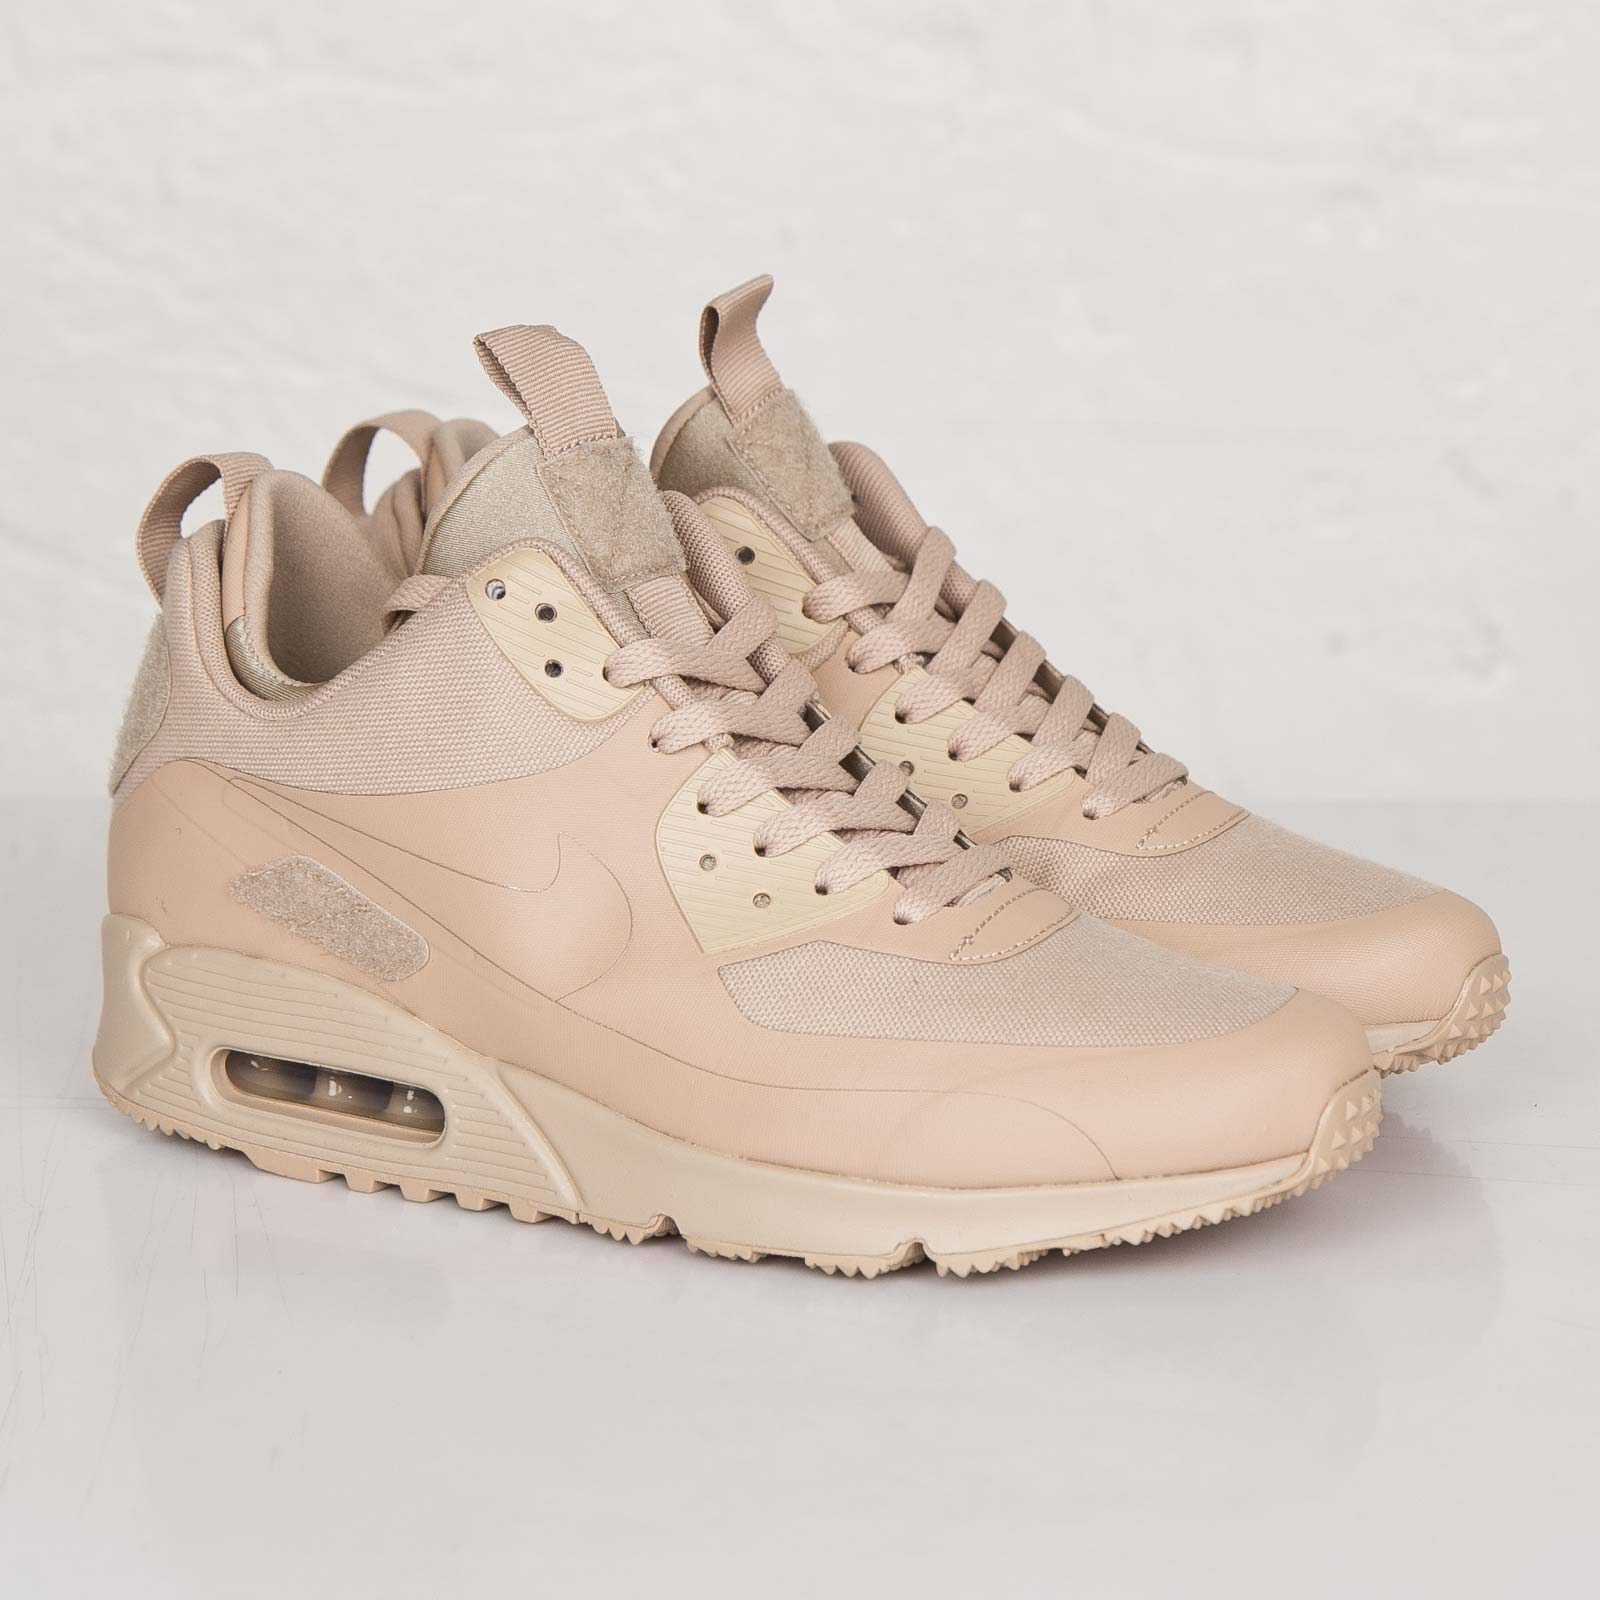 Nike Air Max 90 Sneakerboot SP 704570 200 Sneakersnstuff